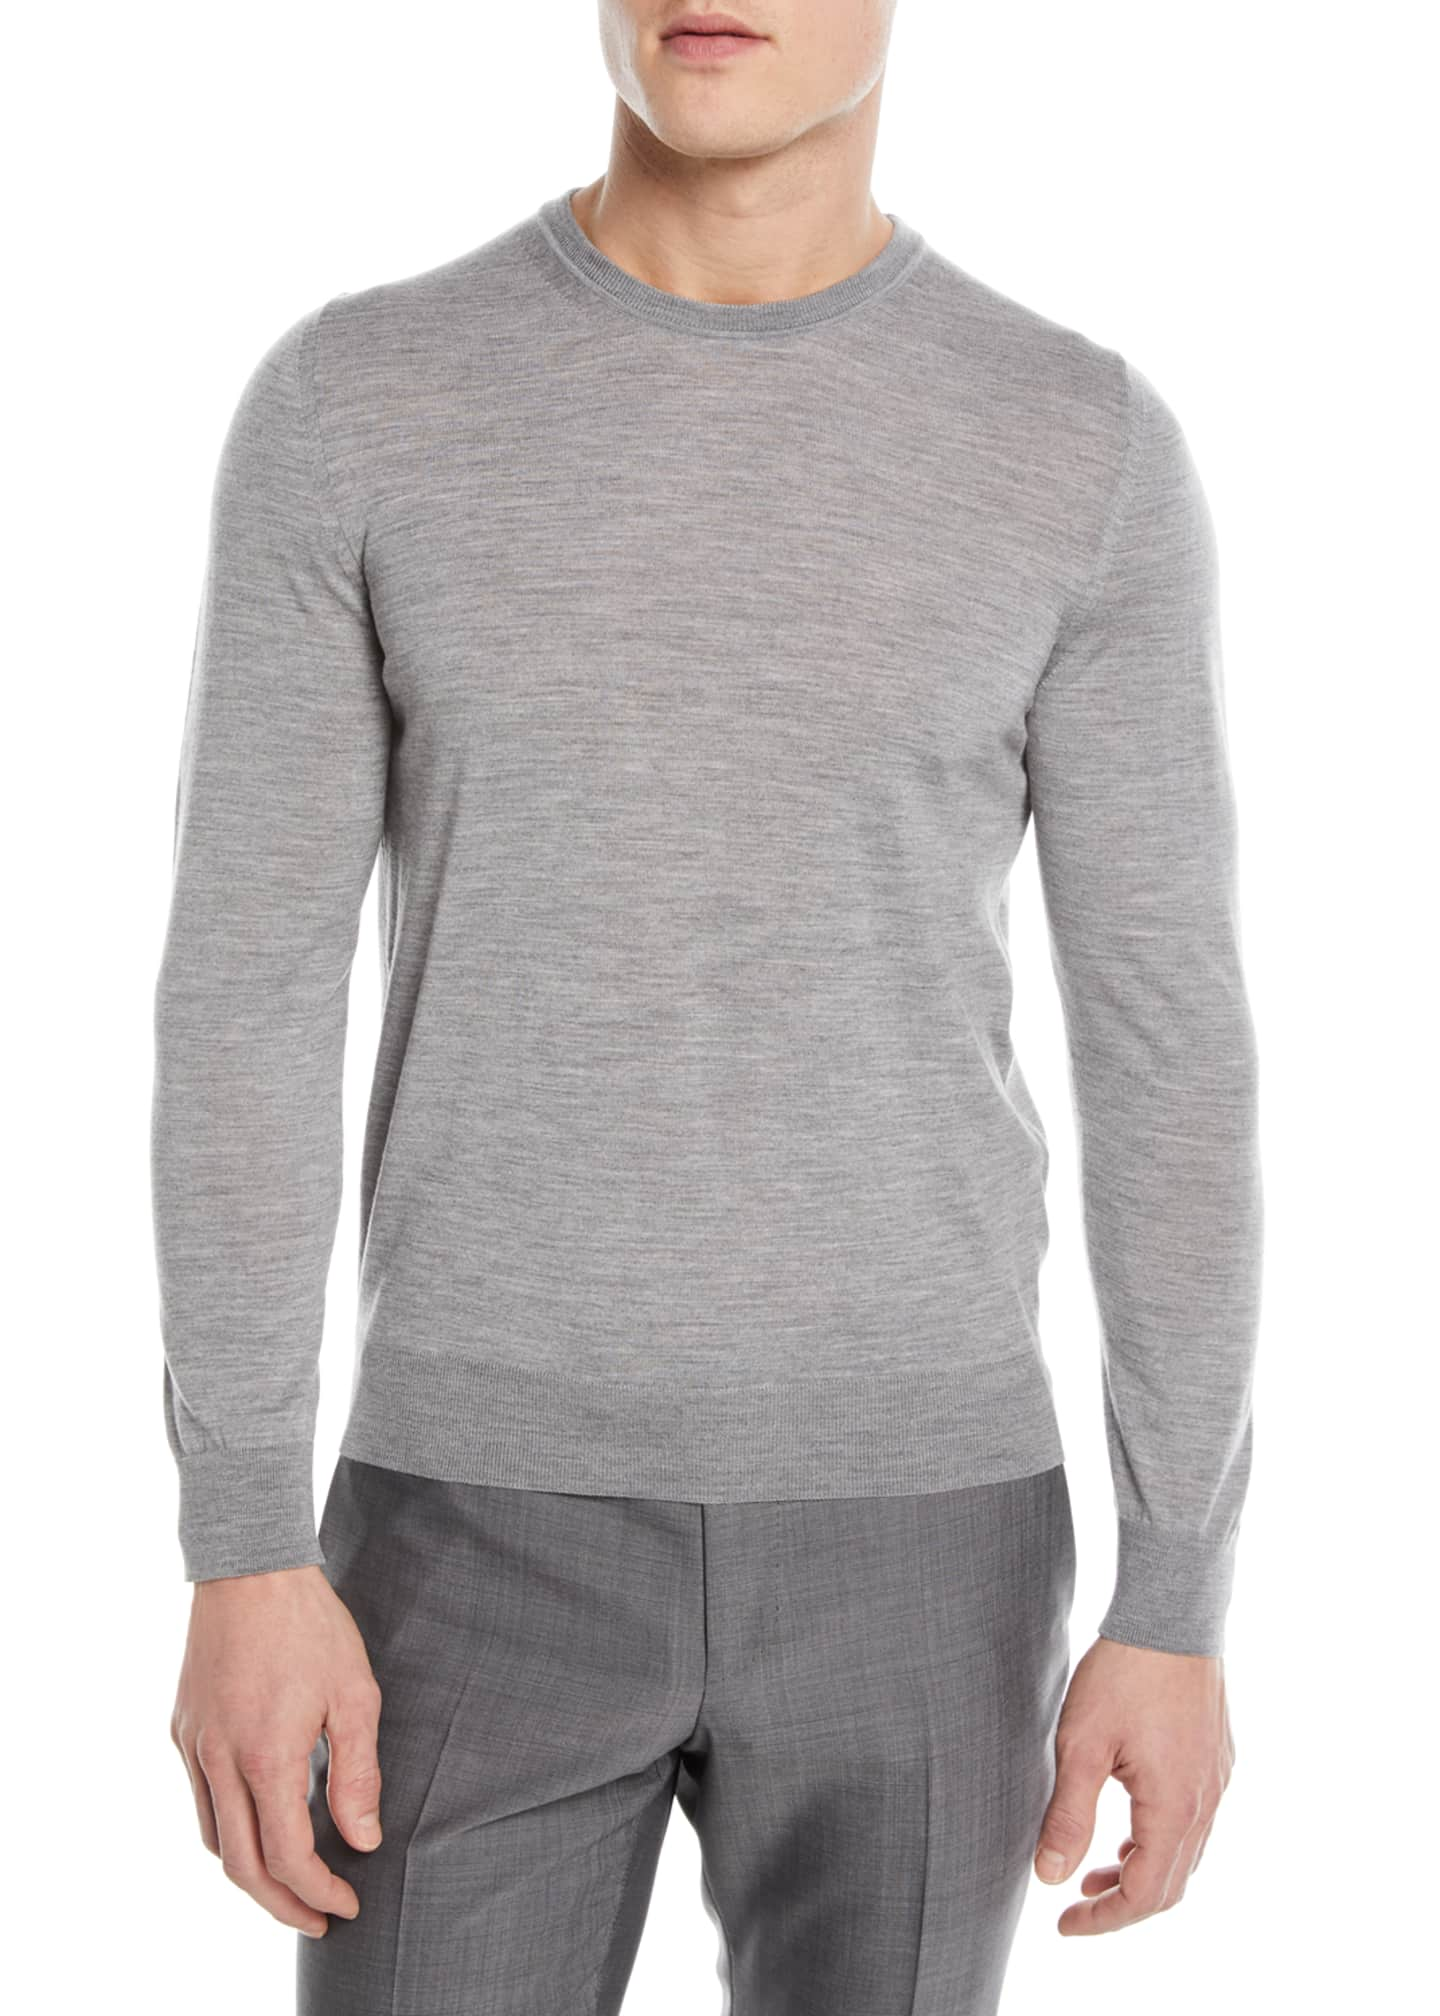 Z Zegna Crewneck Wool Pullover Sweater